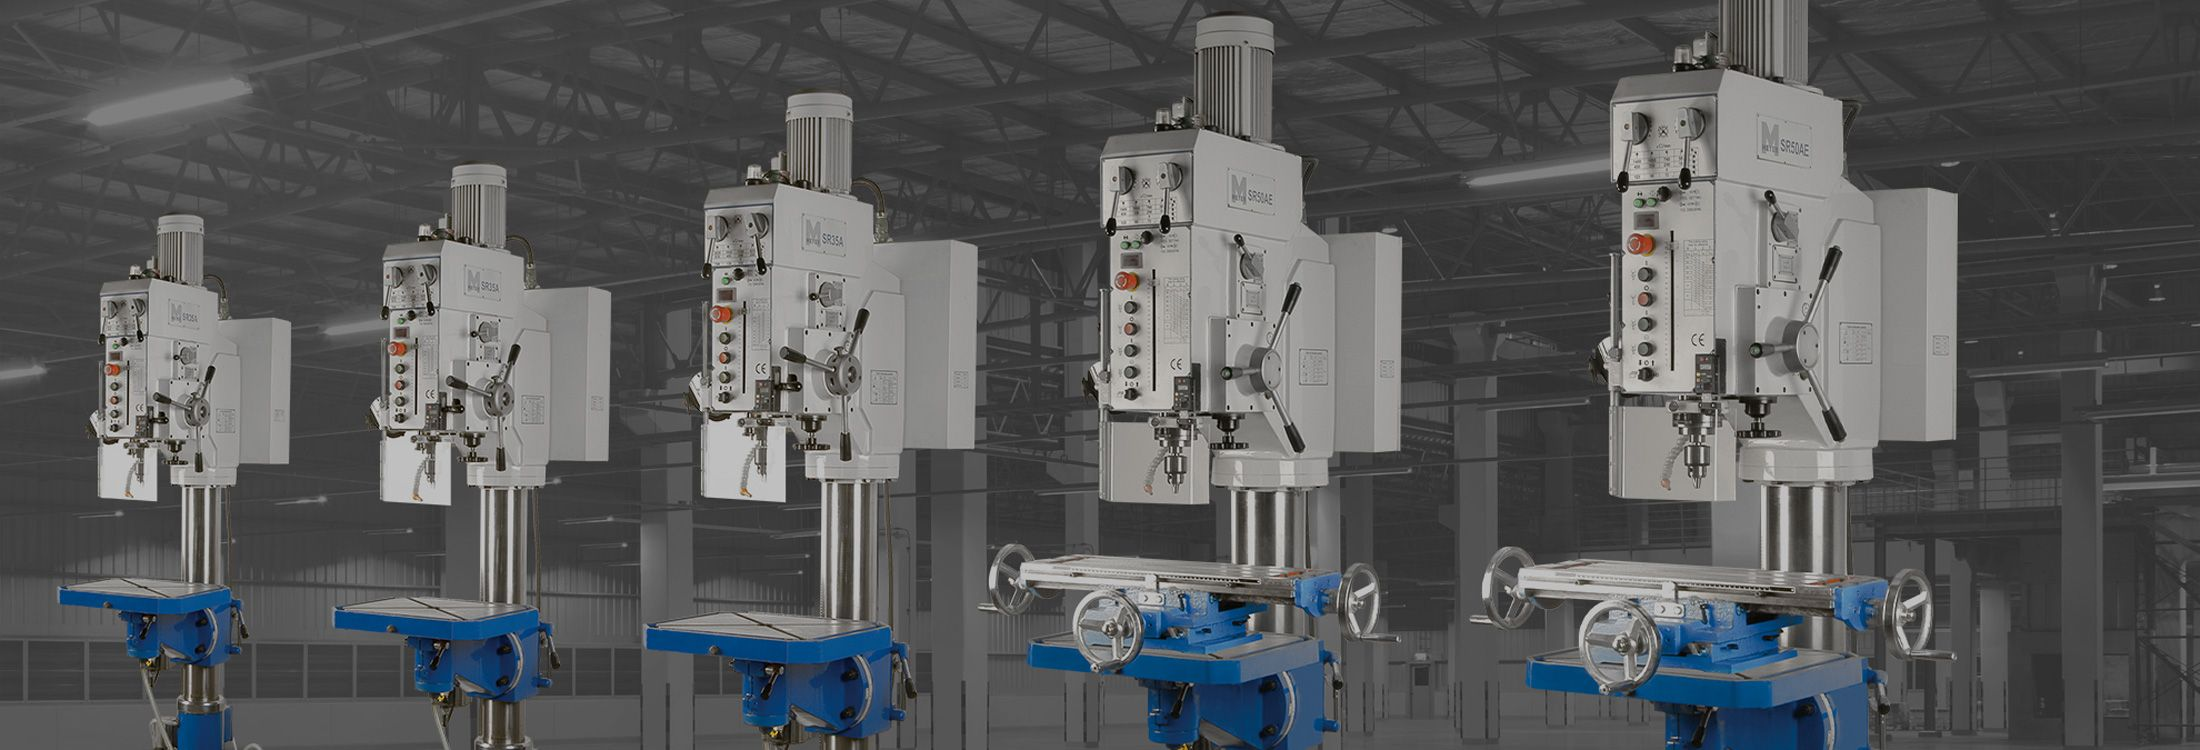 RADIAL & PILLAR DRILLING MACHINES